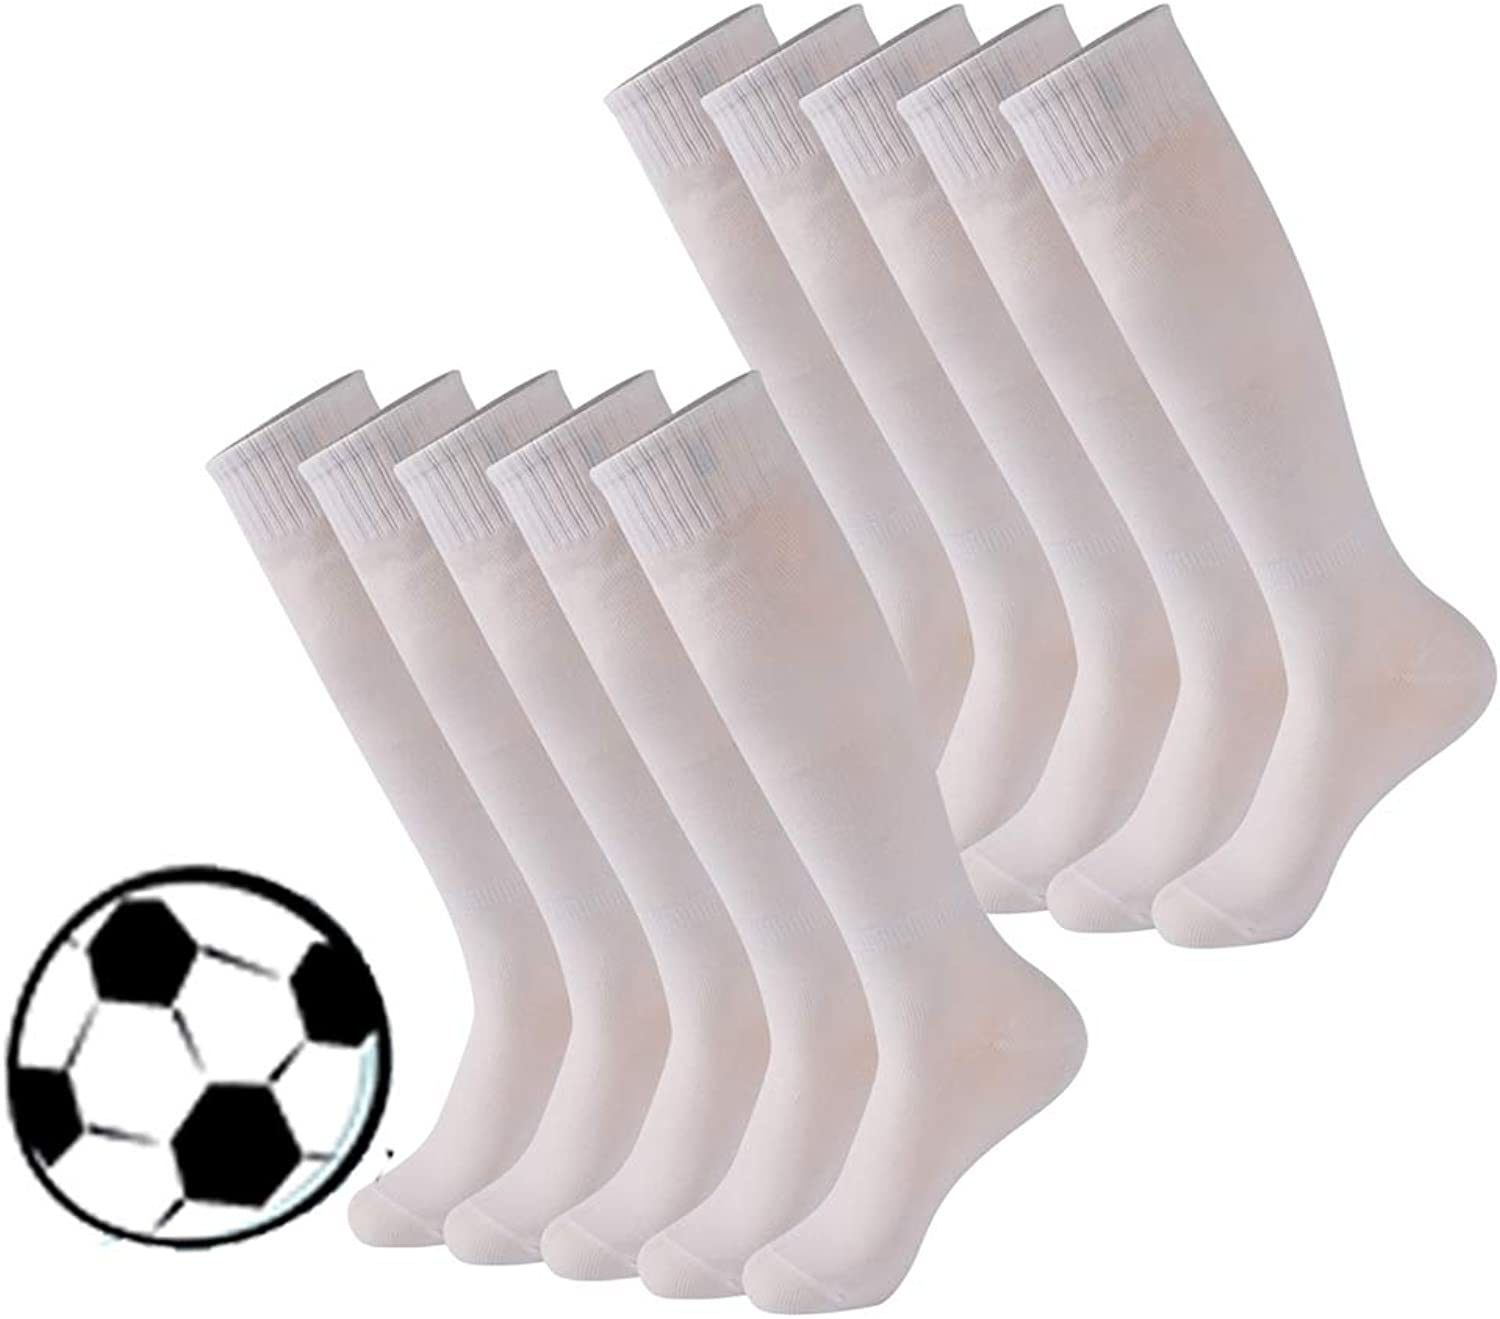 Calbom Soccer Socks, Unisex Knee High Football Cheerleading Tube Sock 2 6 10 Pairs